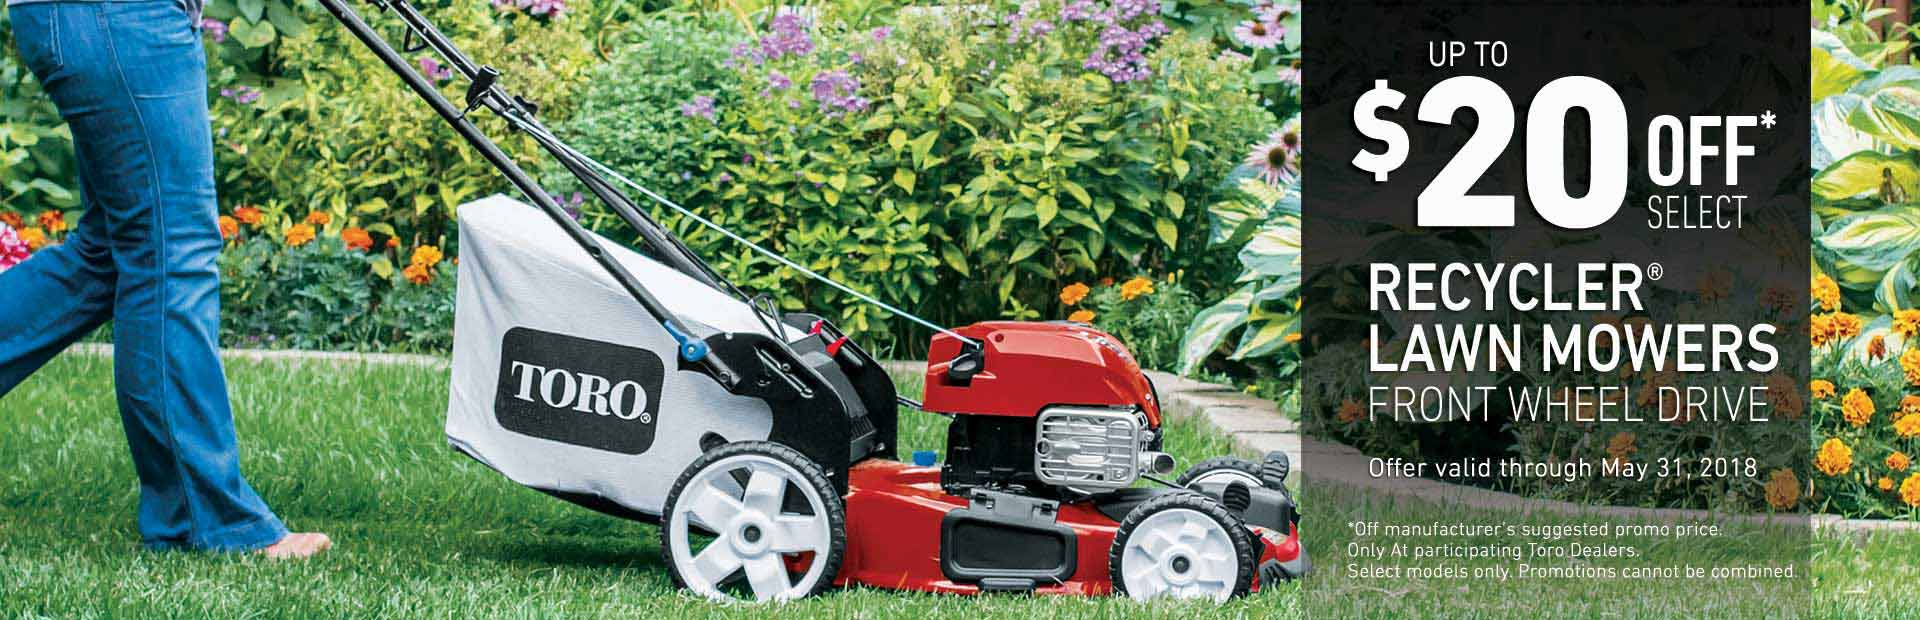 Toro: $20 off Select Recycler FWD Mowers